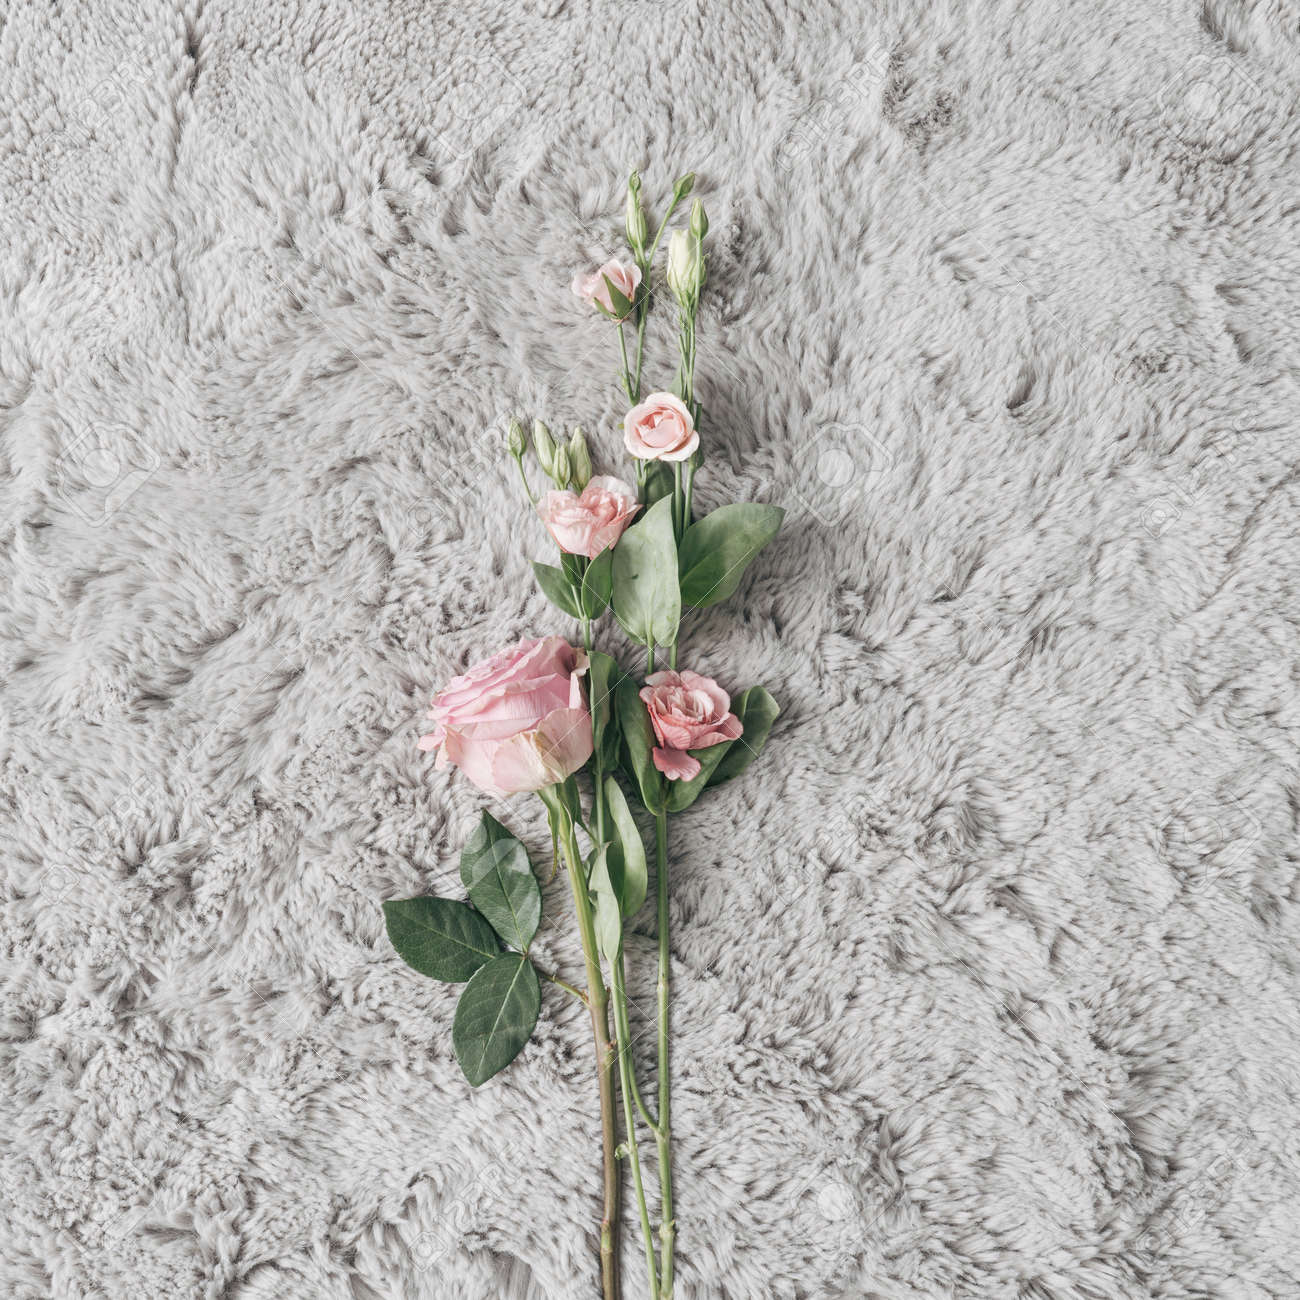 Fur background with Spring or Summer flowers. Minimal nature love concept. Mother's day Or Valentines idea. - 163288099